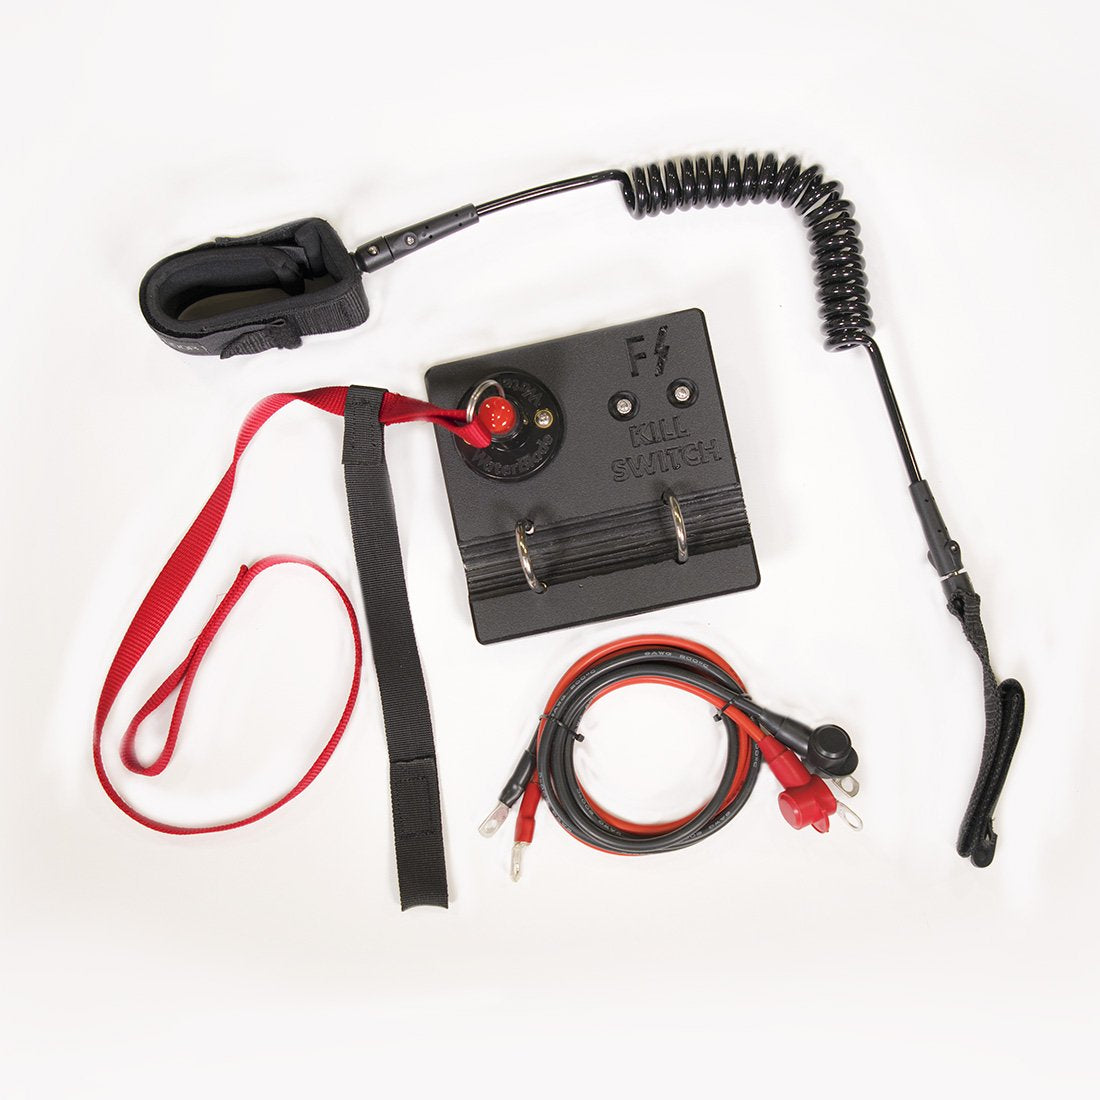 Fish Stalker Universal Marine Kill Switch Kit Accessories 4theoutdoors America US USA SUP outdoors